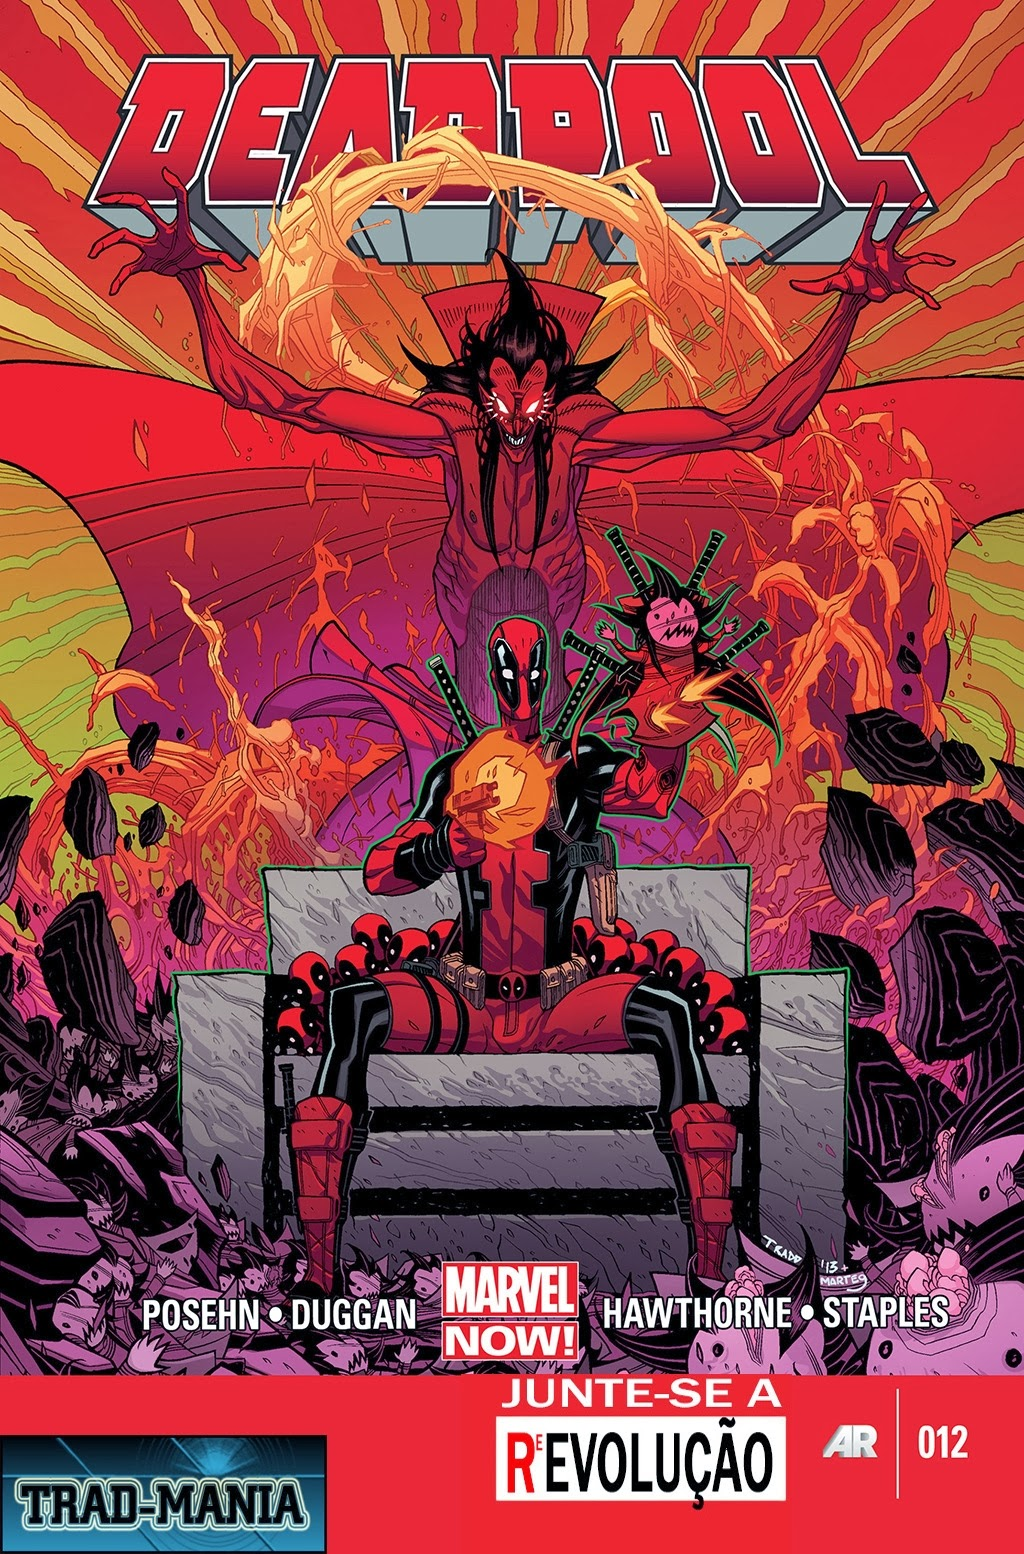 Nova Marvel! Deadpool v5 #12